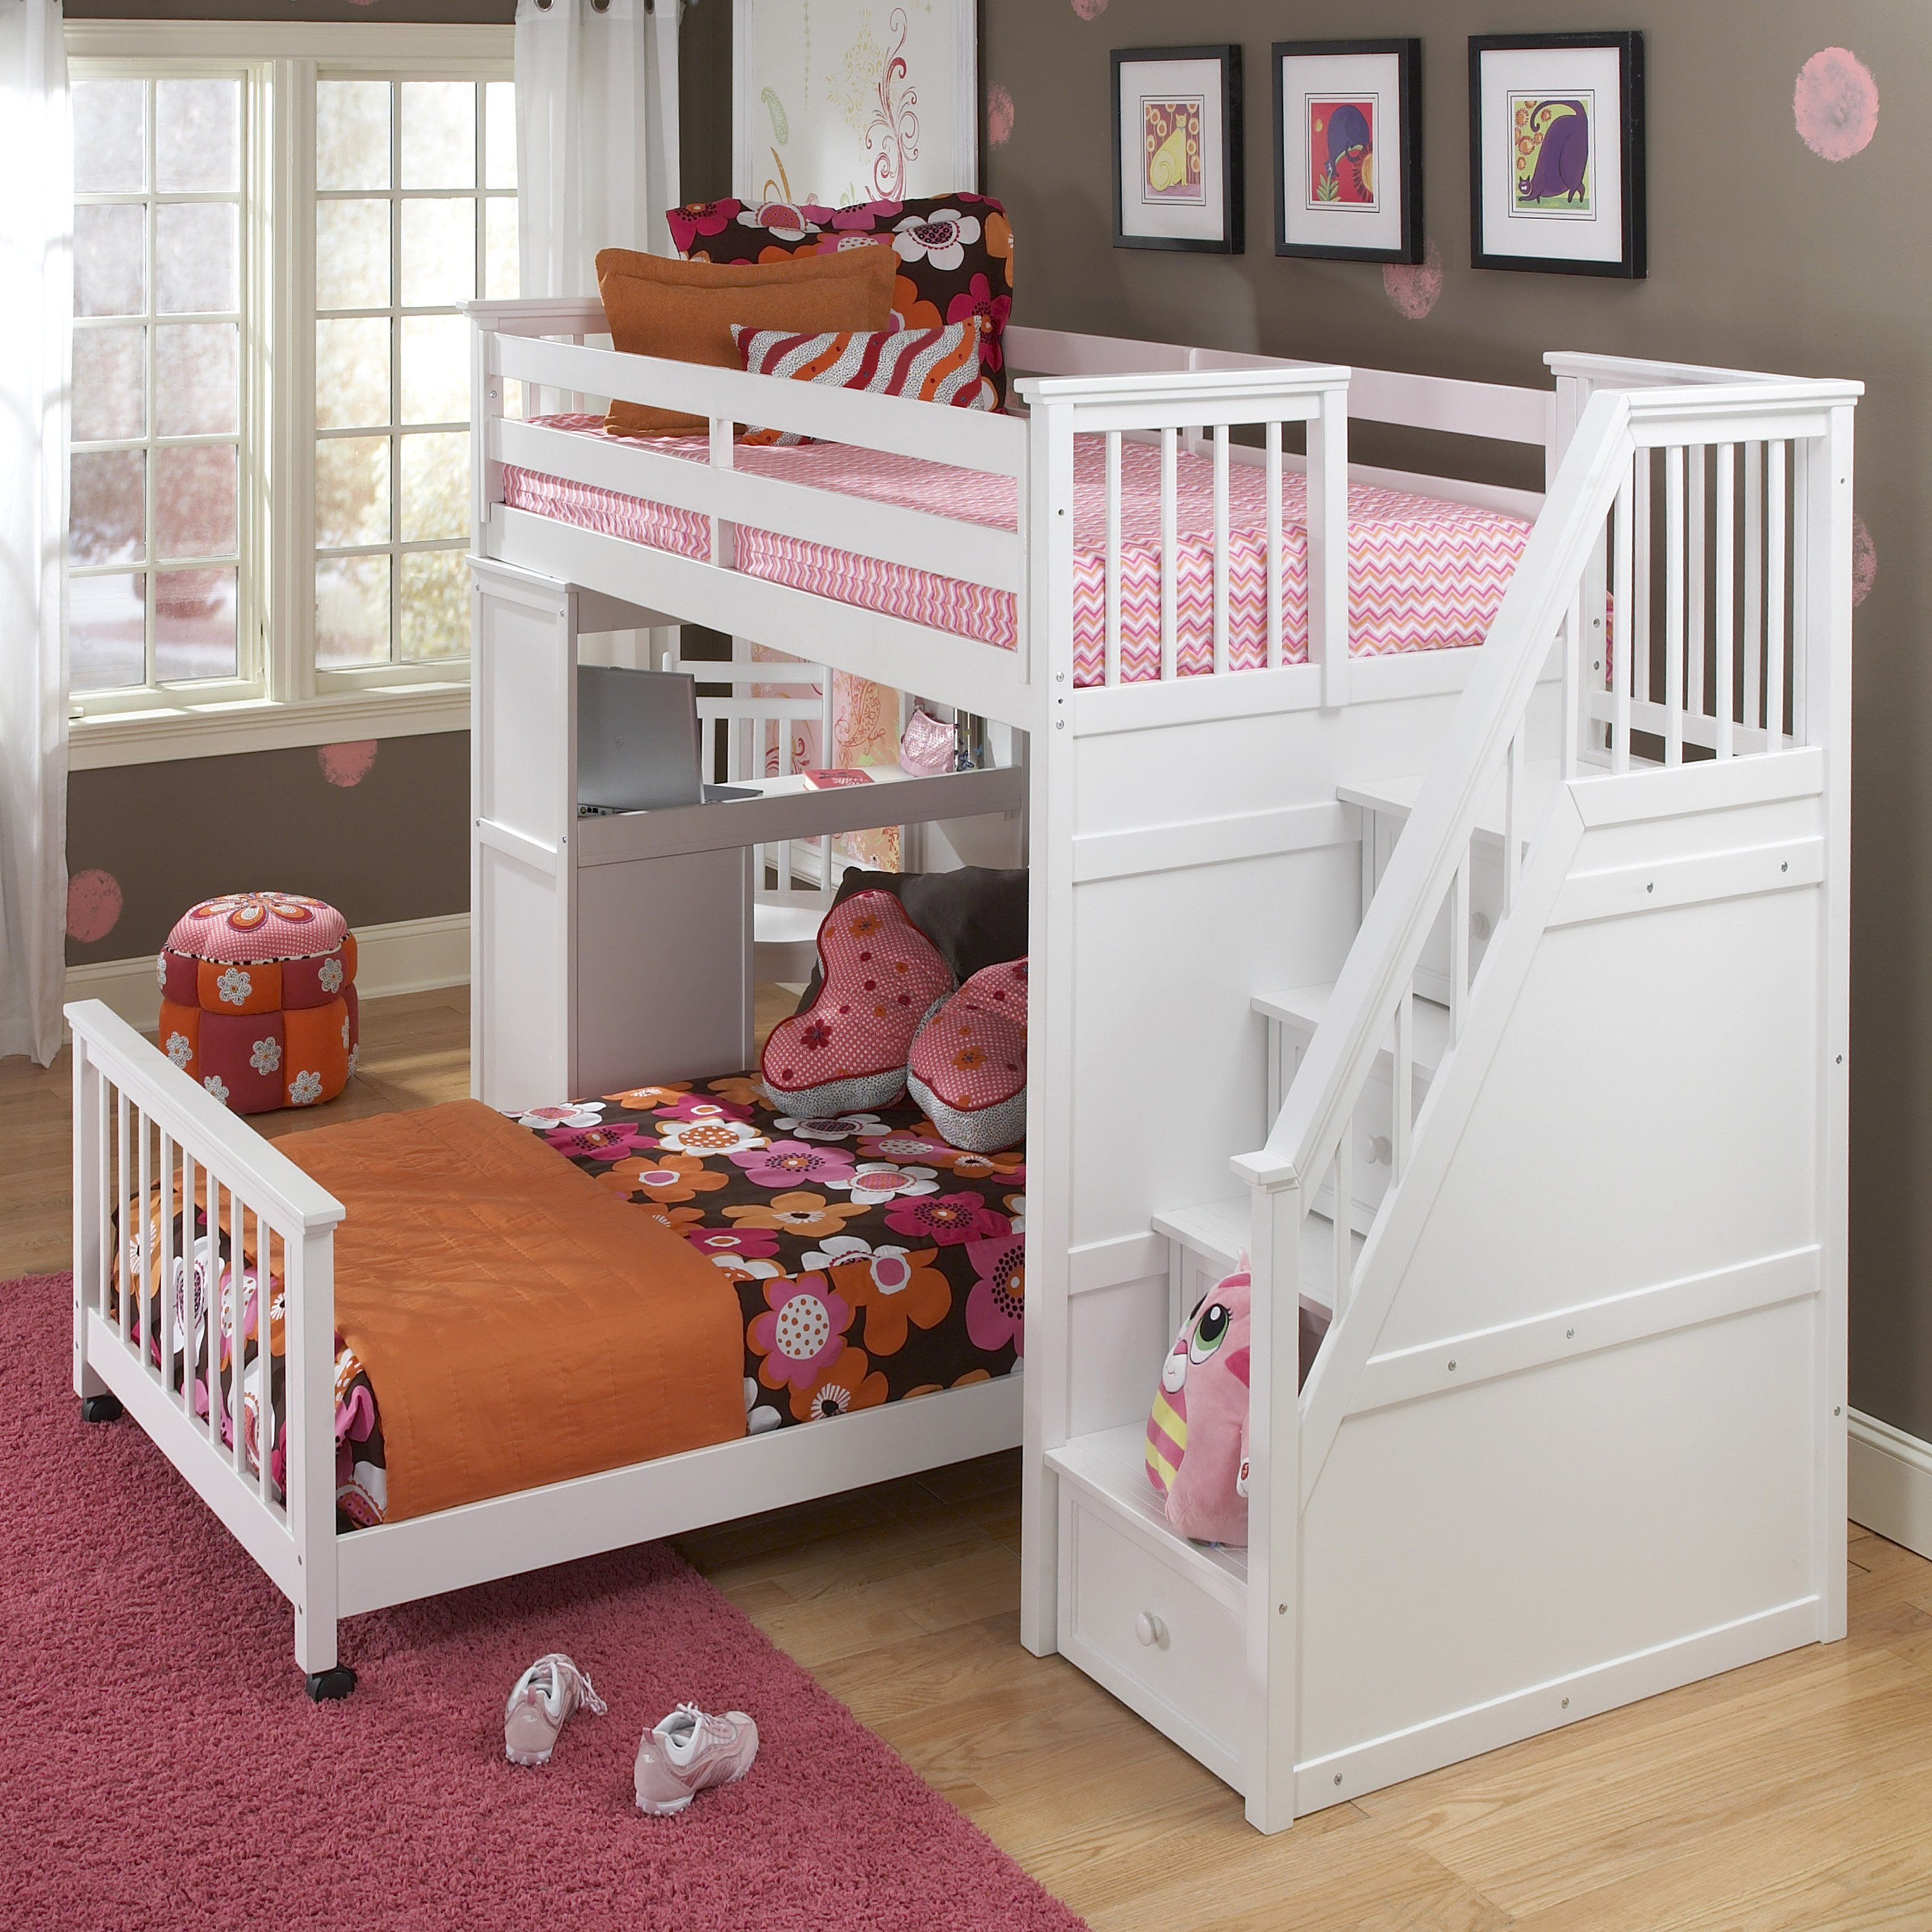 kids loft beds ne kids schoolhouse student loft bed - white - bunk beds u0026 loft QVFPWHD